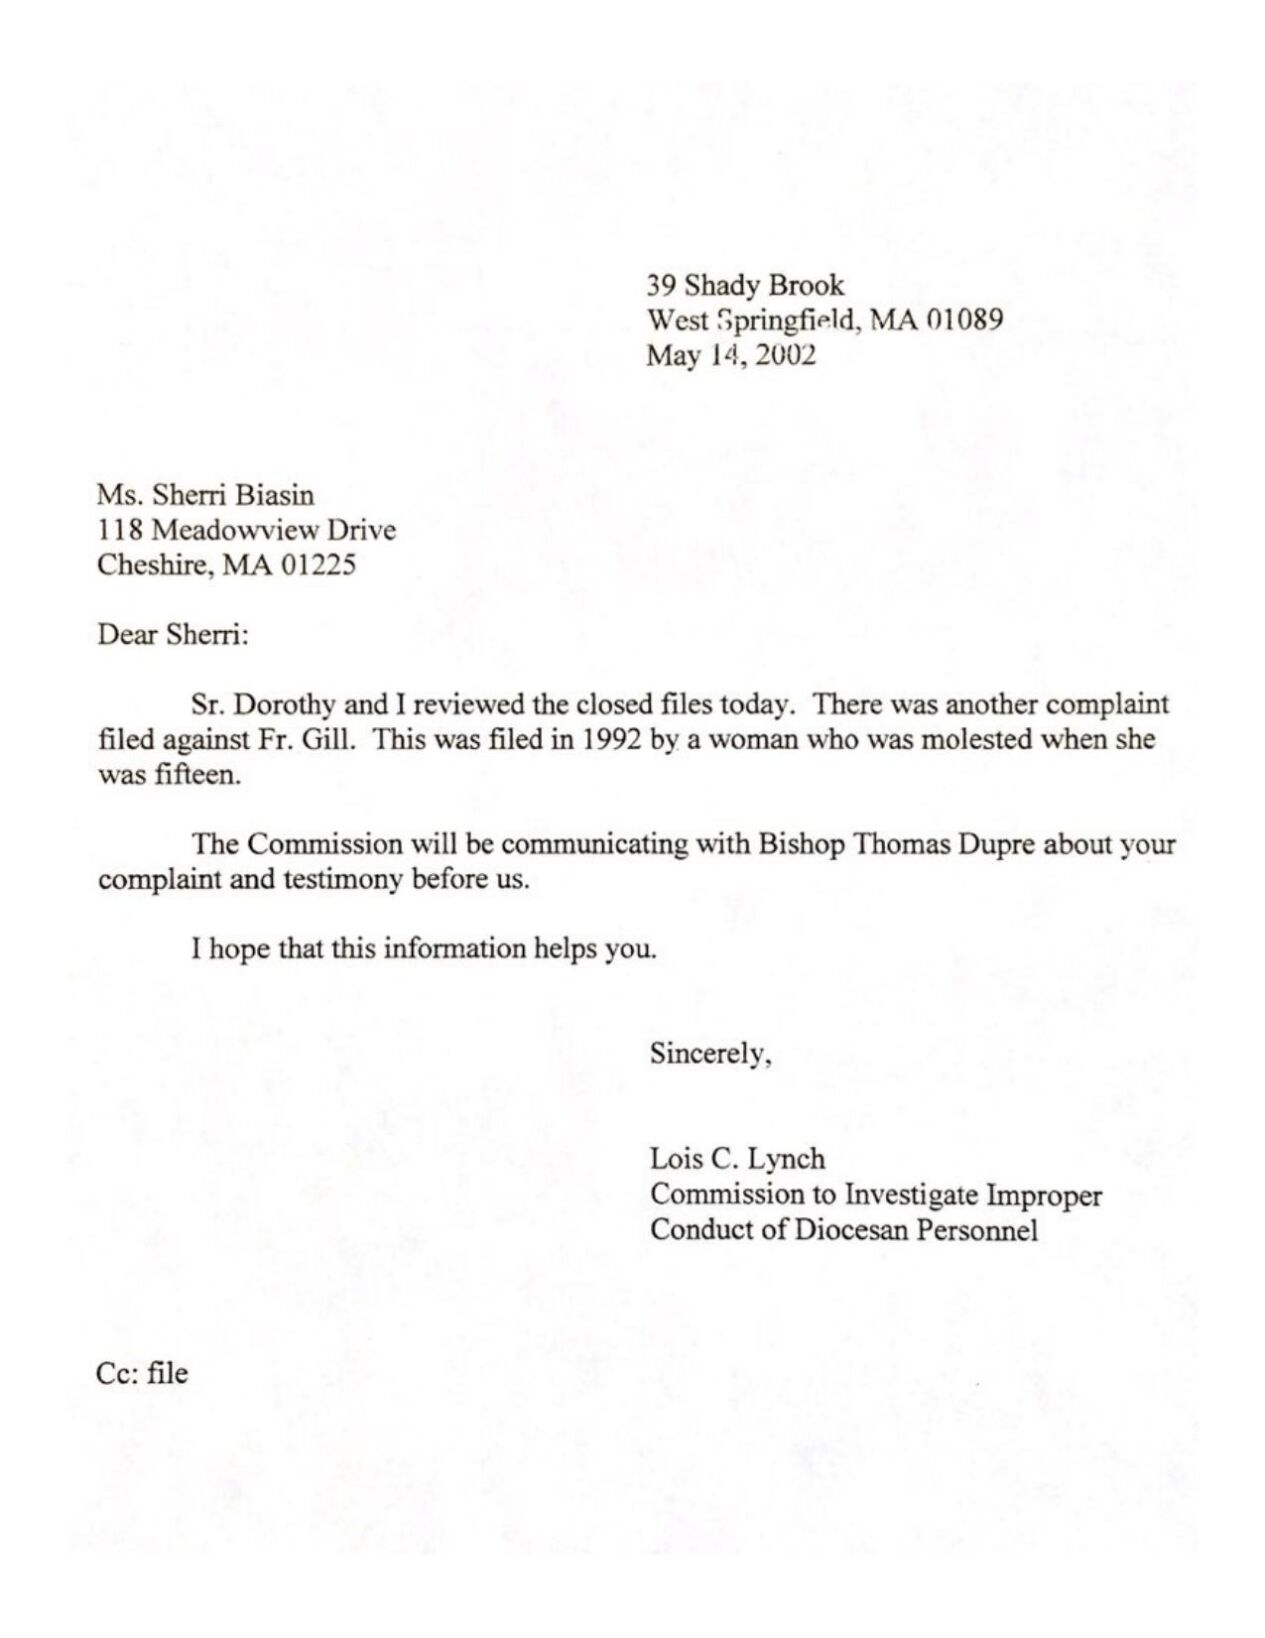 DOCUMENTS: 3 early letters from Springfield Diocese to Sheri A. Biasin